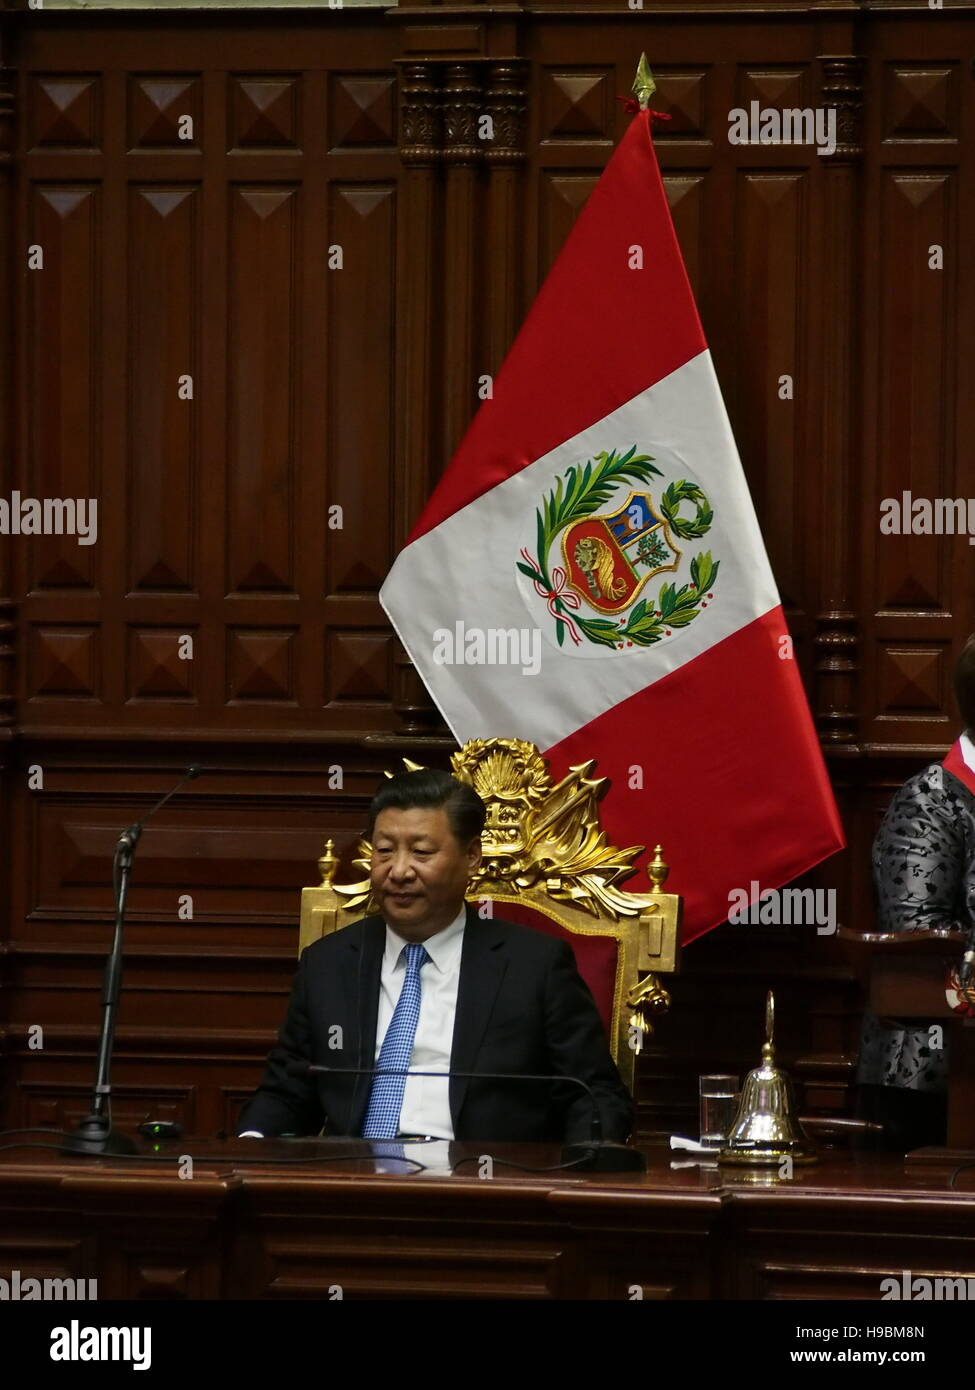 The President of the People's Republic of China, Xi Jinping, in a solemn session in the Peruvian hemicycle. - Stock Image